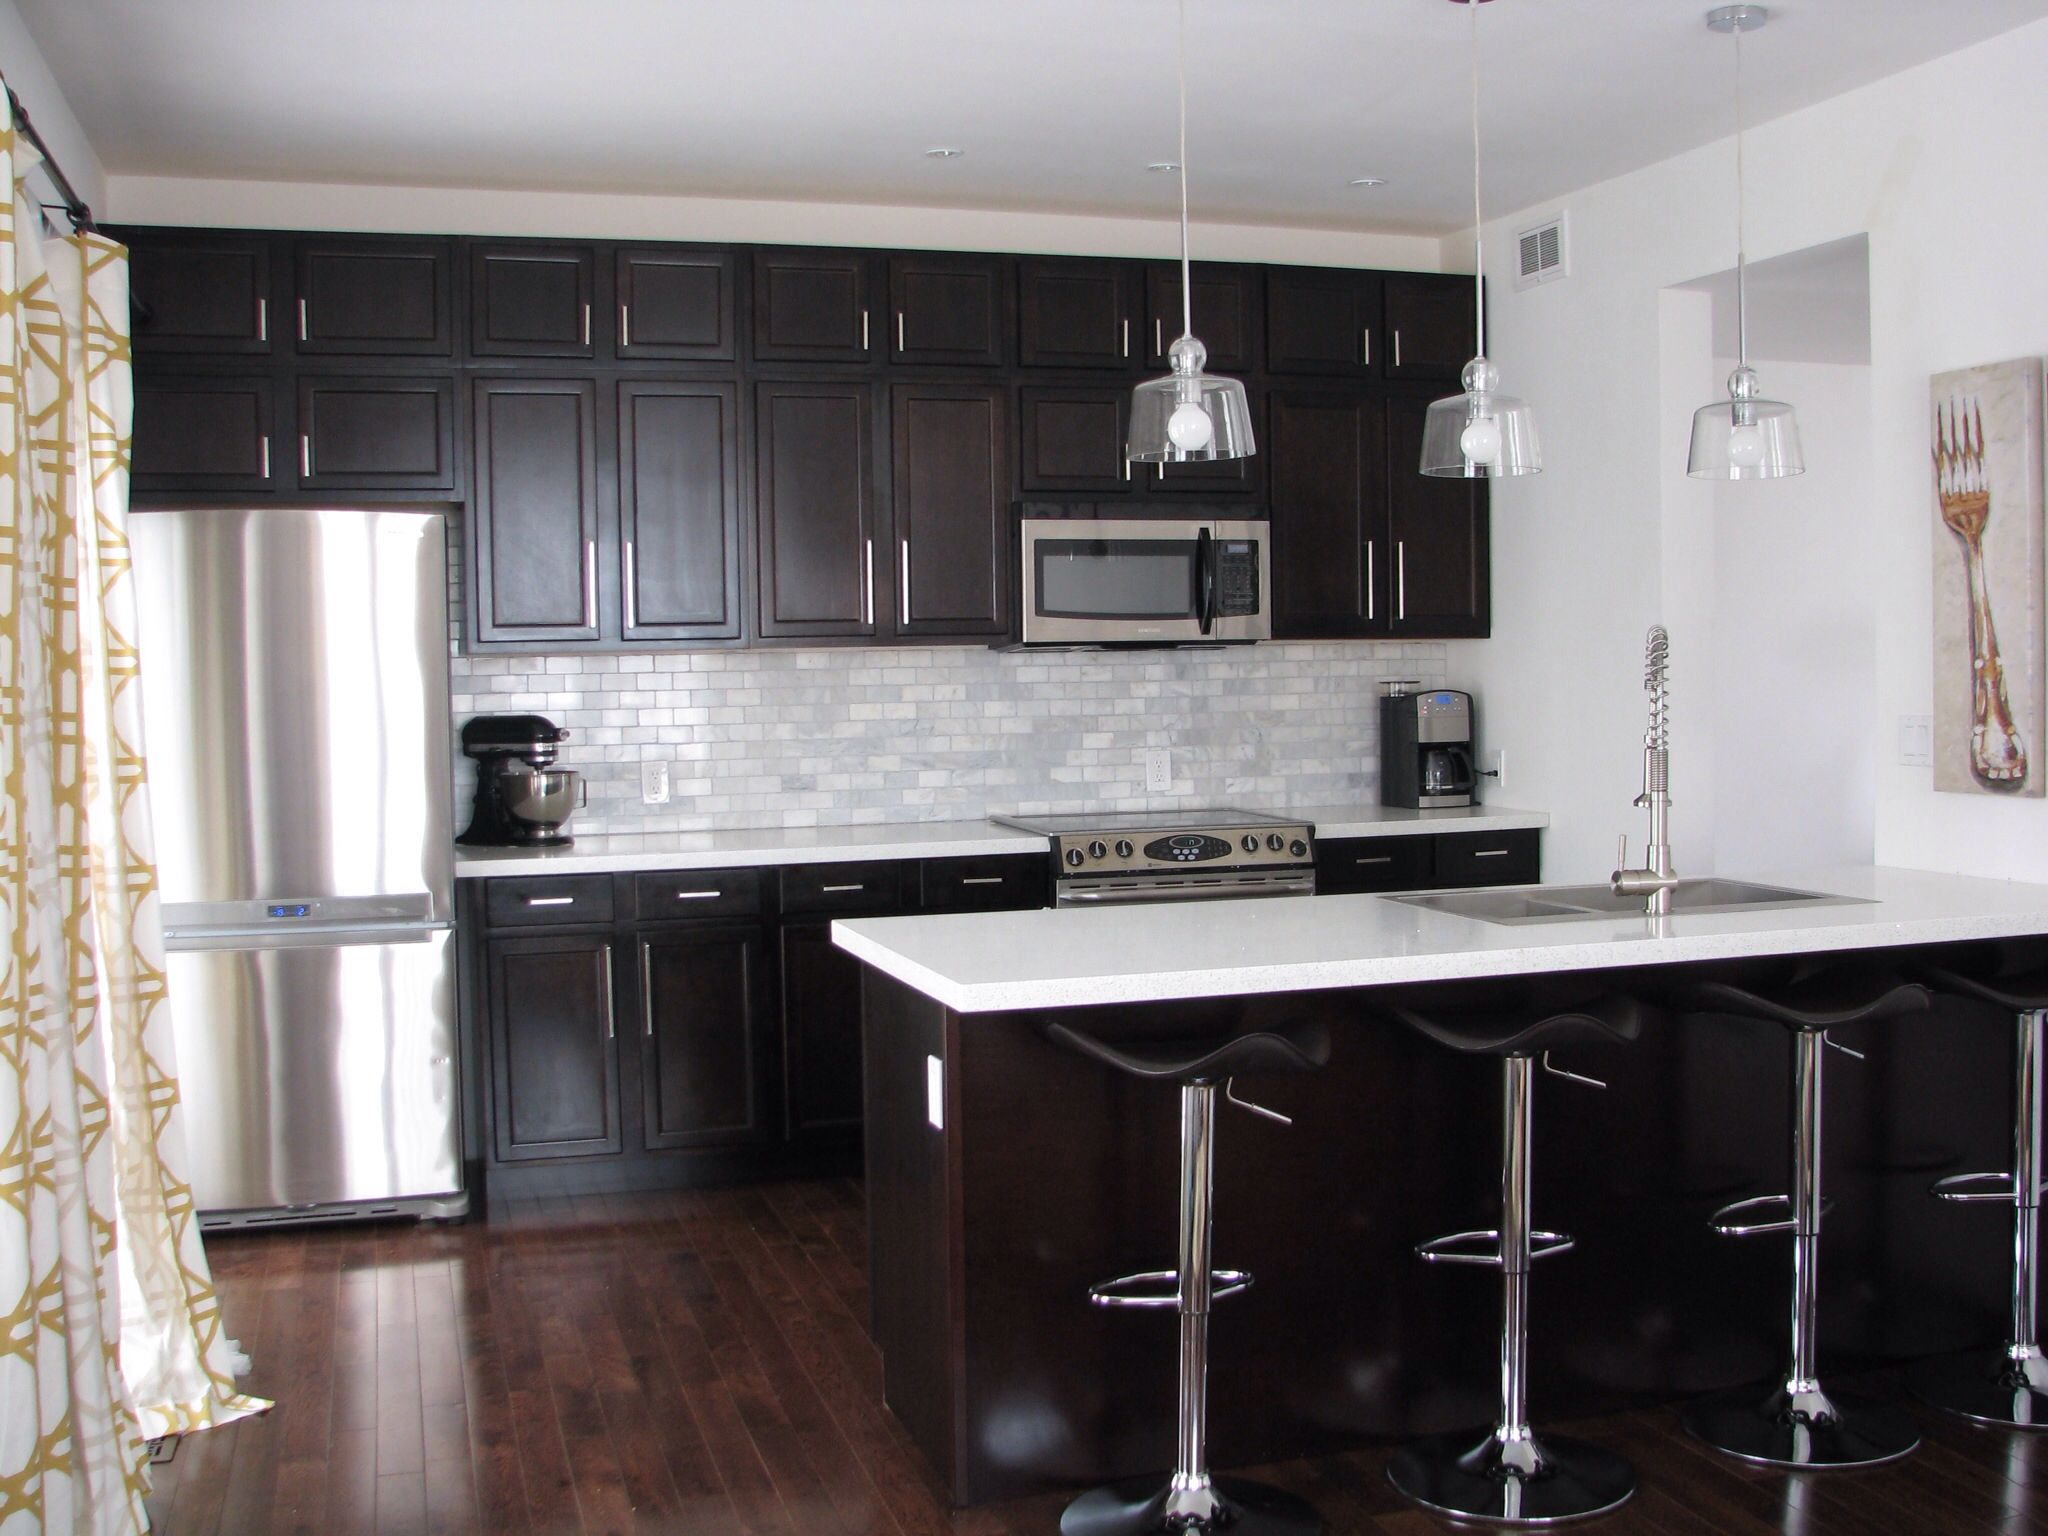 Black Kitchen Cabinets With White Marble Countertops Kitchen with dark cabinets and white quartz counters | White